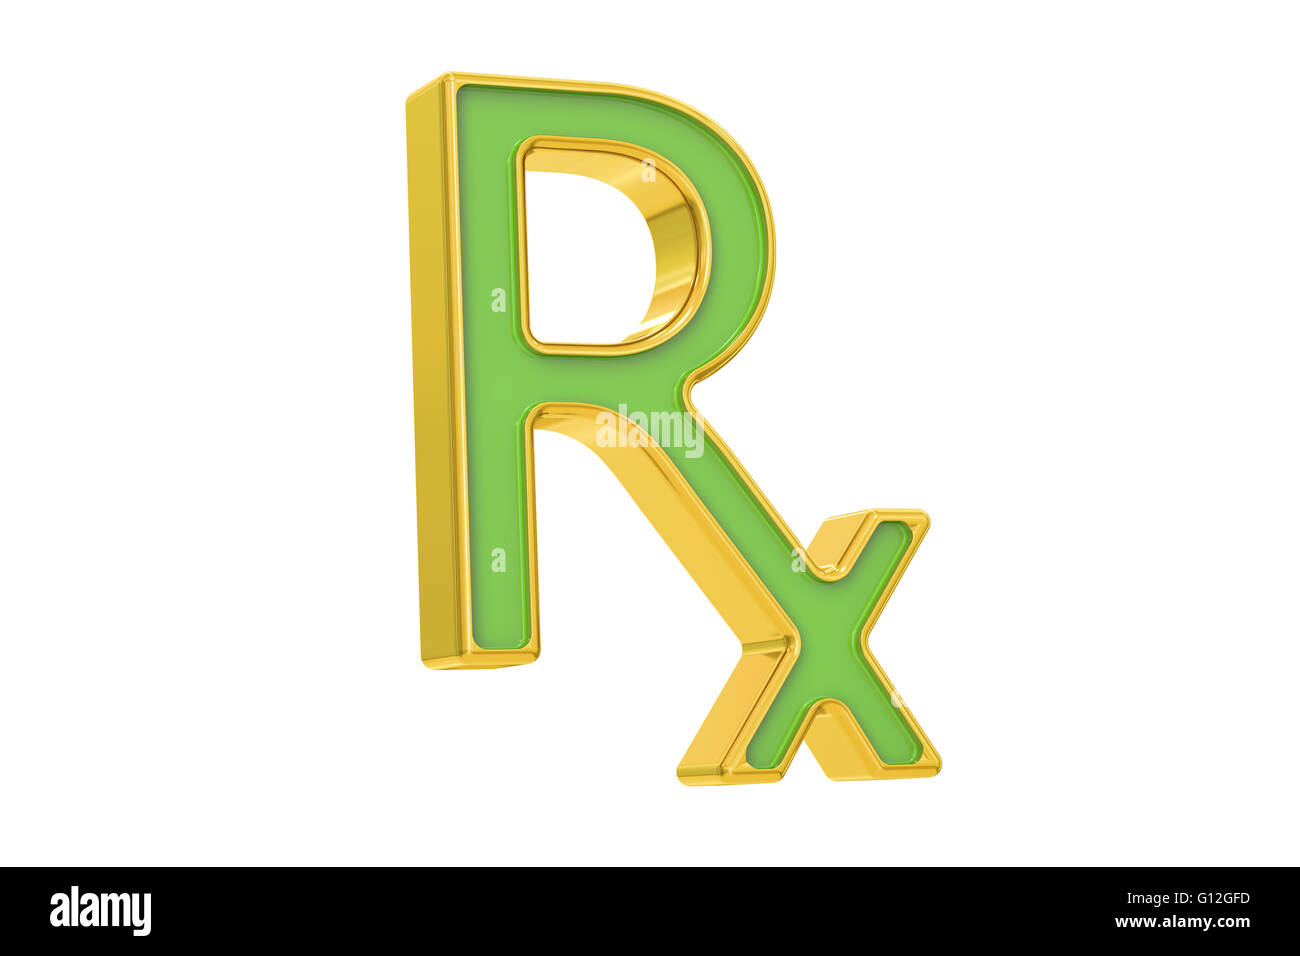 Rx Prescription Medicine Symbol 3d Rendering Stock Photo 103933745